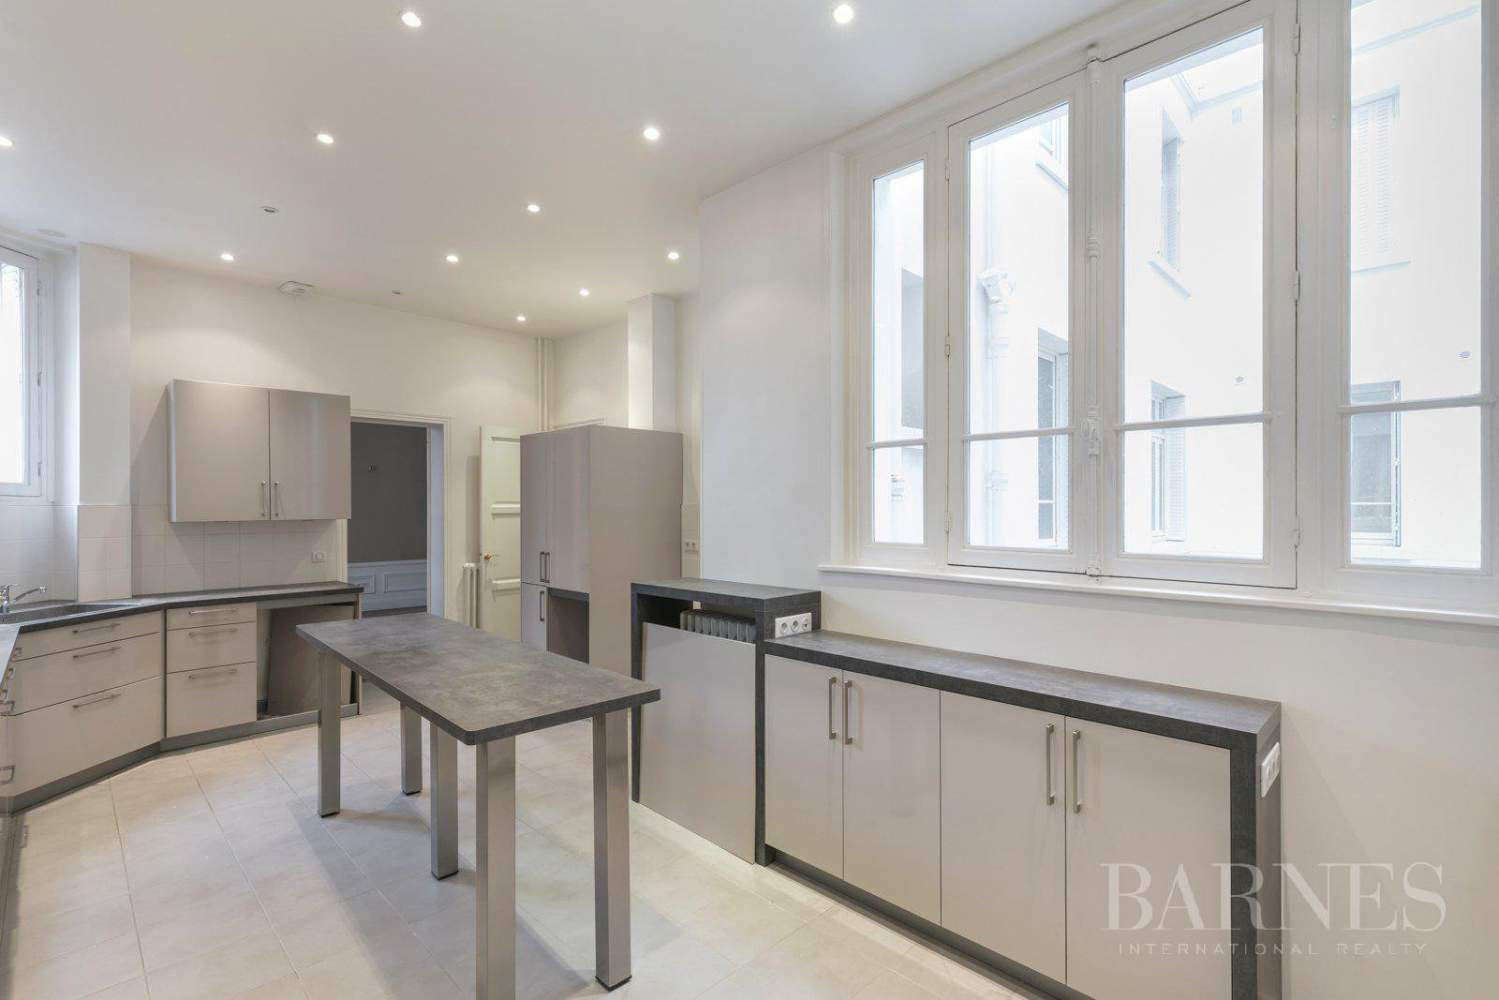 EXCLUSIVE - 8-ROOM APARTMENT FOR SALE - RENOVATED 1930s BUILDING - NEUILLY/PASTEUR picture 9